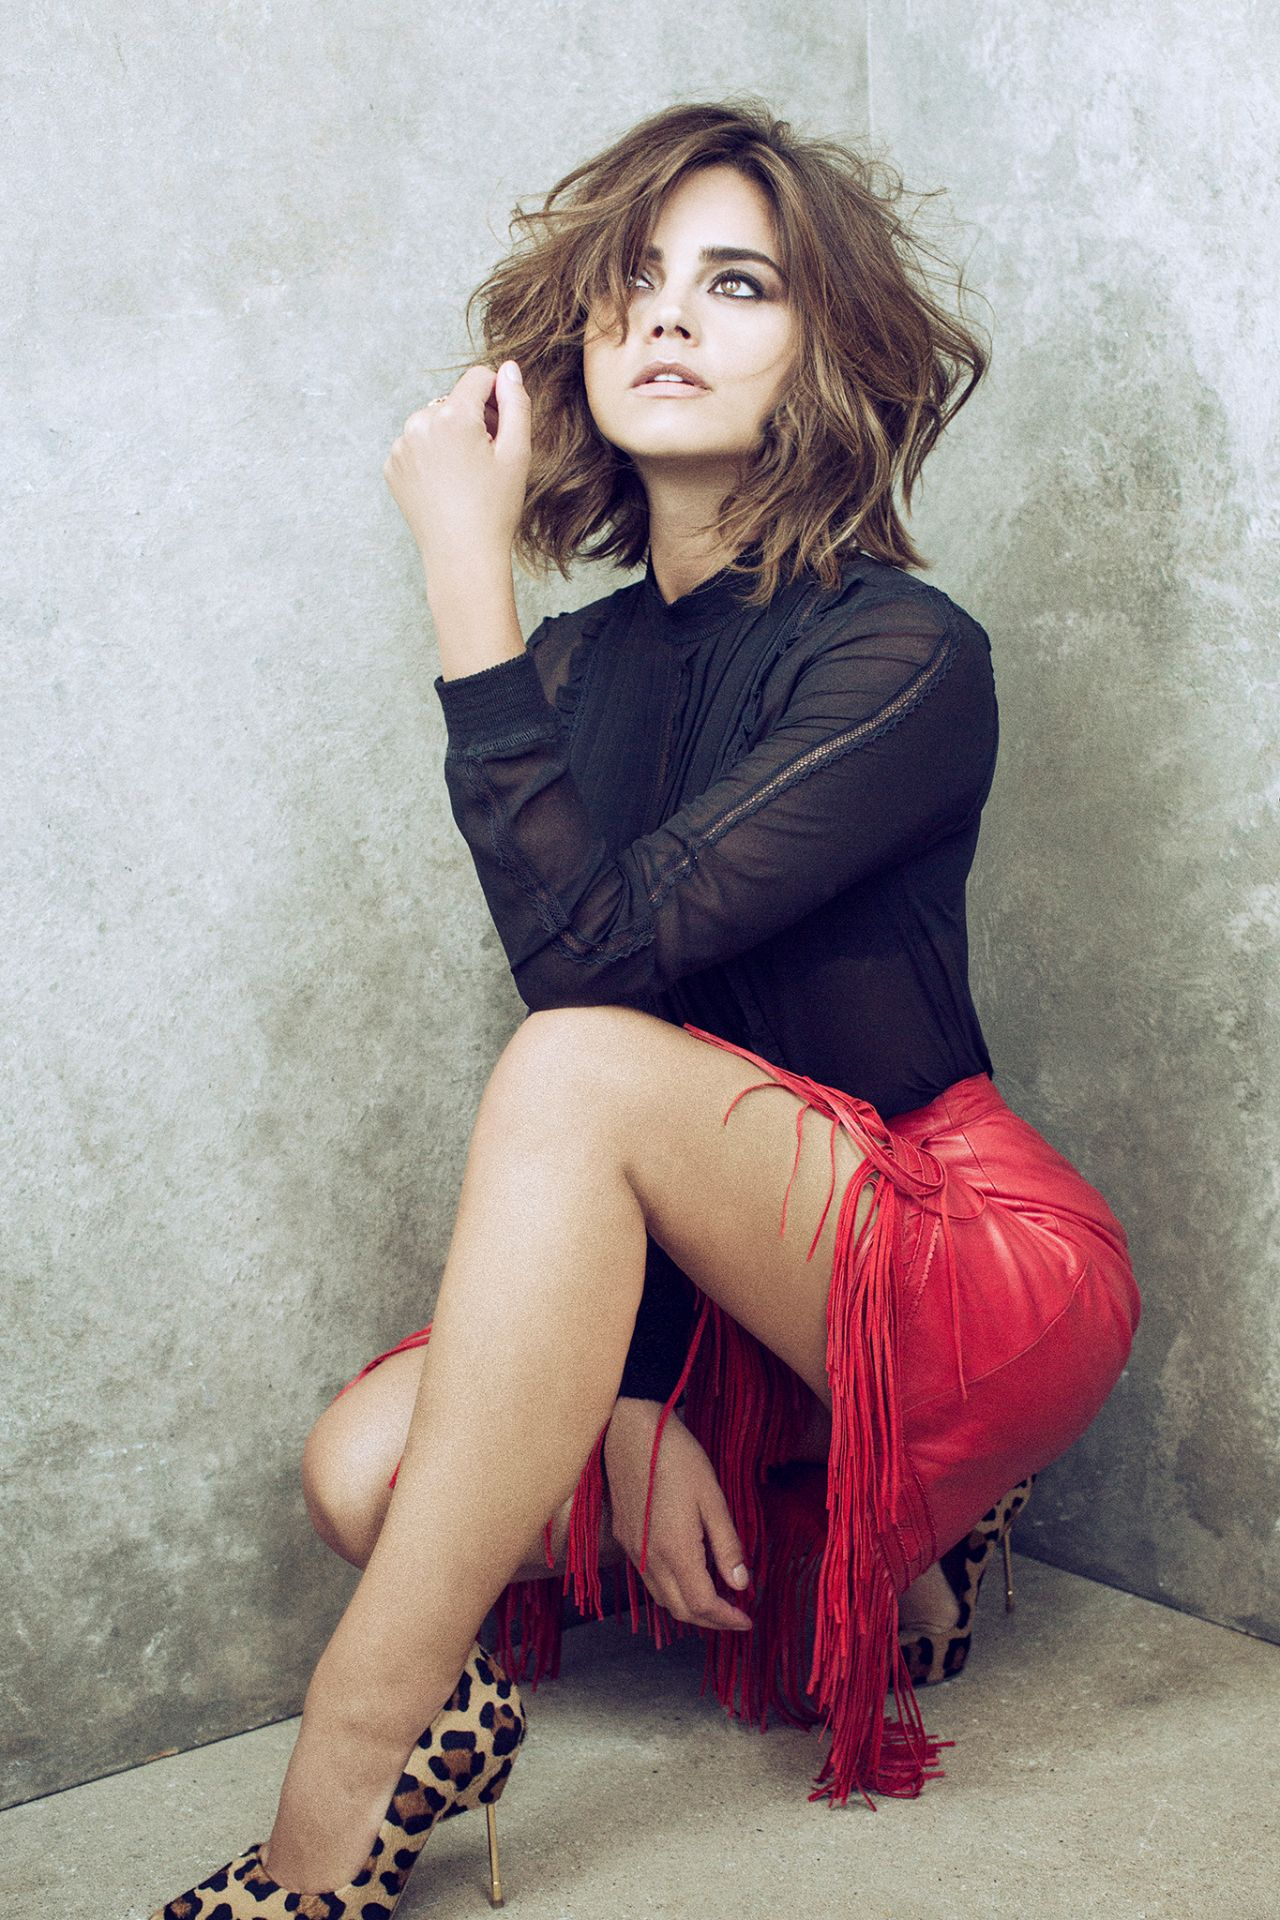 1280x1920 > Jenna-louise Coleman Wallpapers